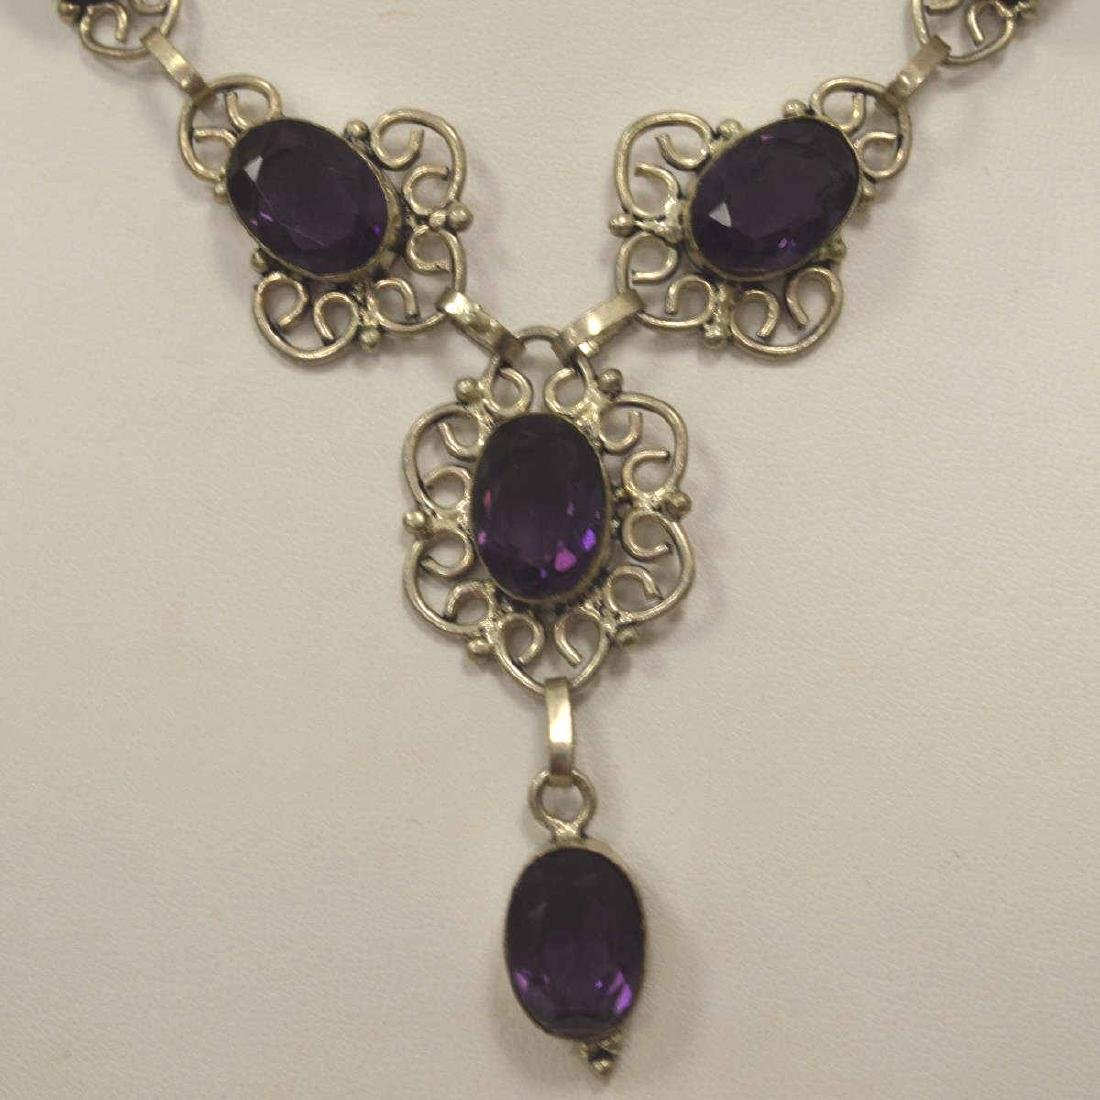 Sterling silver amethyst necklace - 3